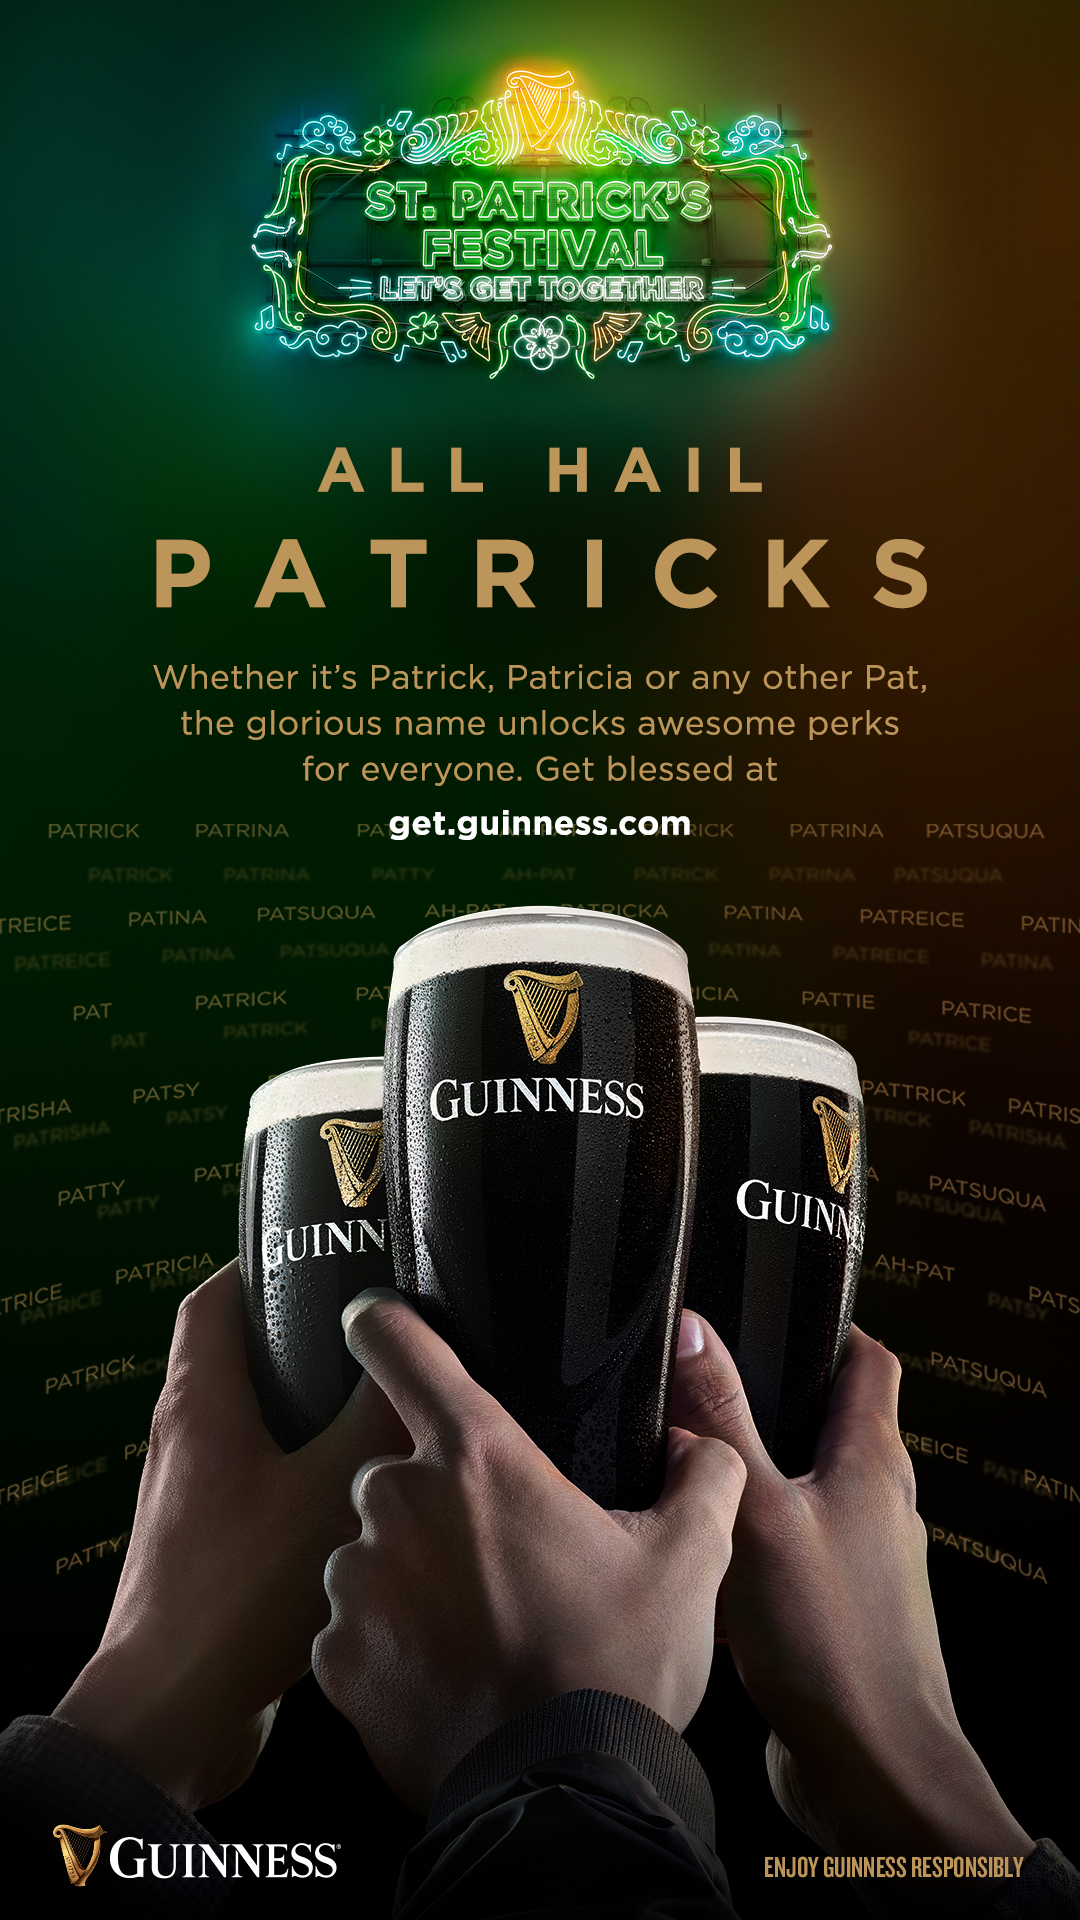 """All Hail Patricks! All names starting with """"Pat"""" gets $5 off ever Pint of Guinness and more rewards on St Patrick's Day - Alvinology"""